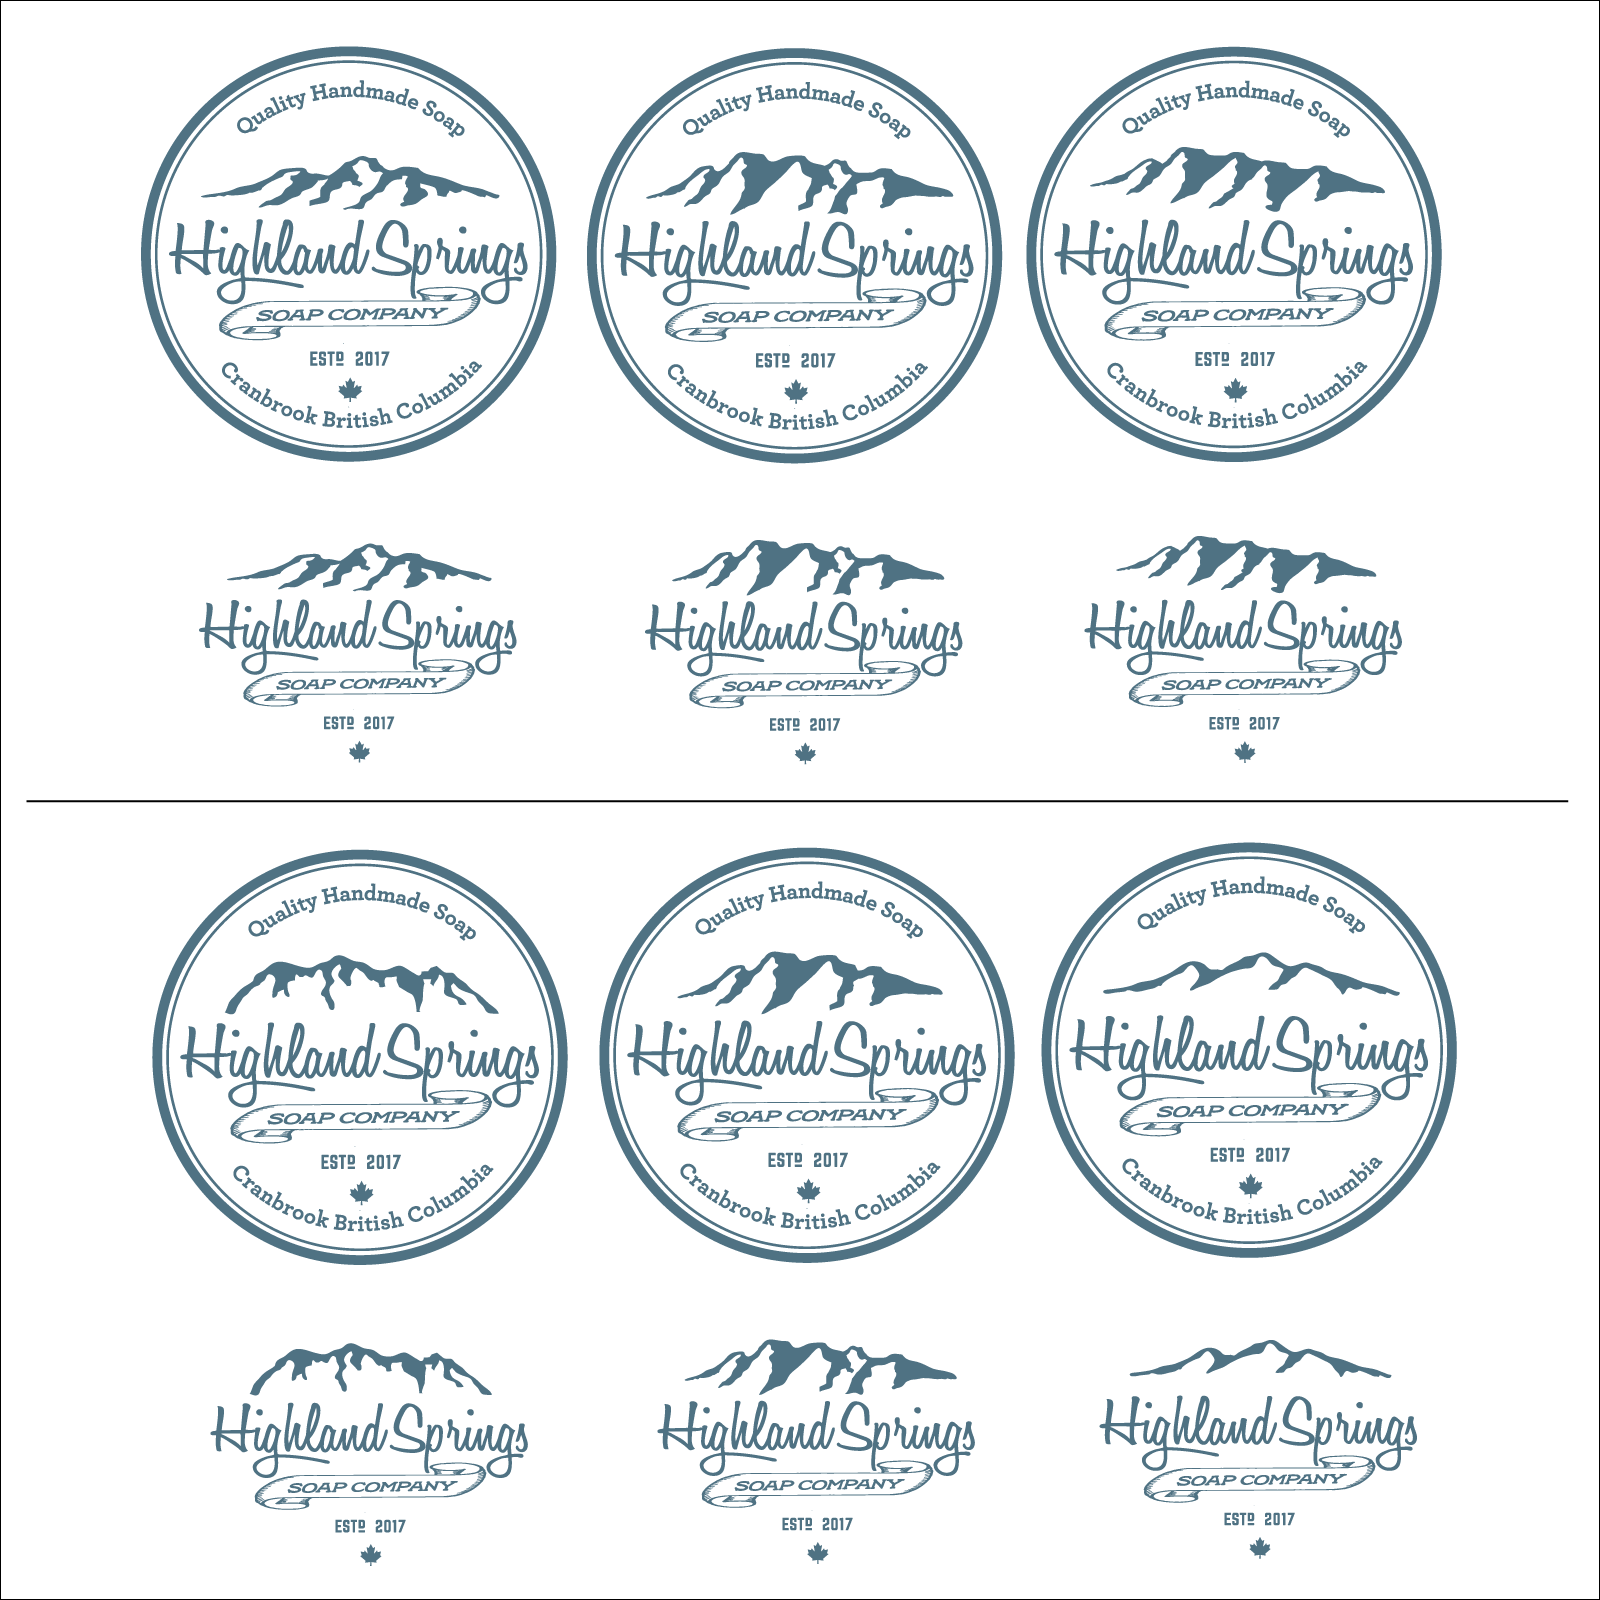 Create an upscale logo for Highland Springs Soap Company